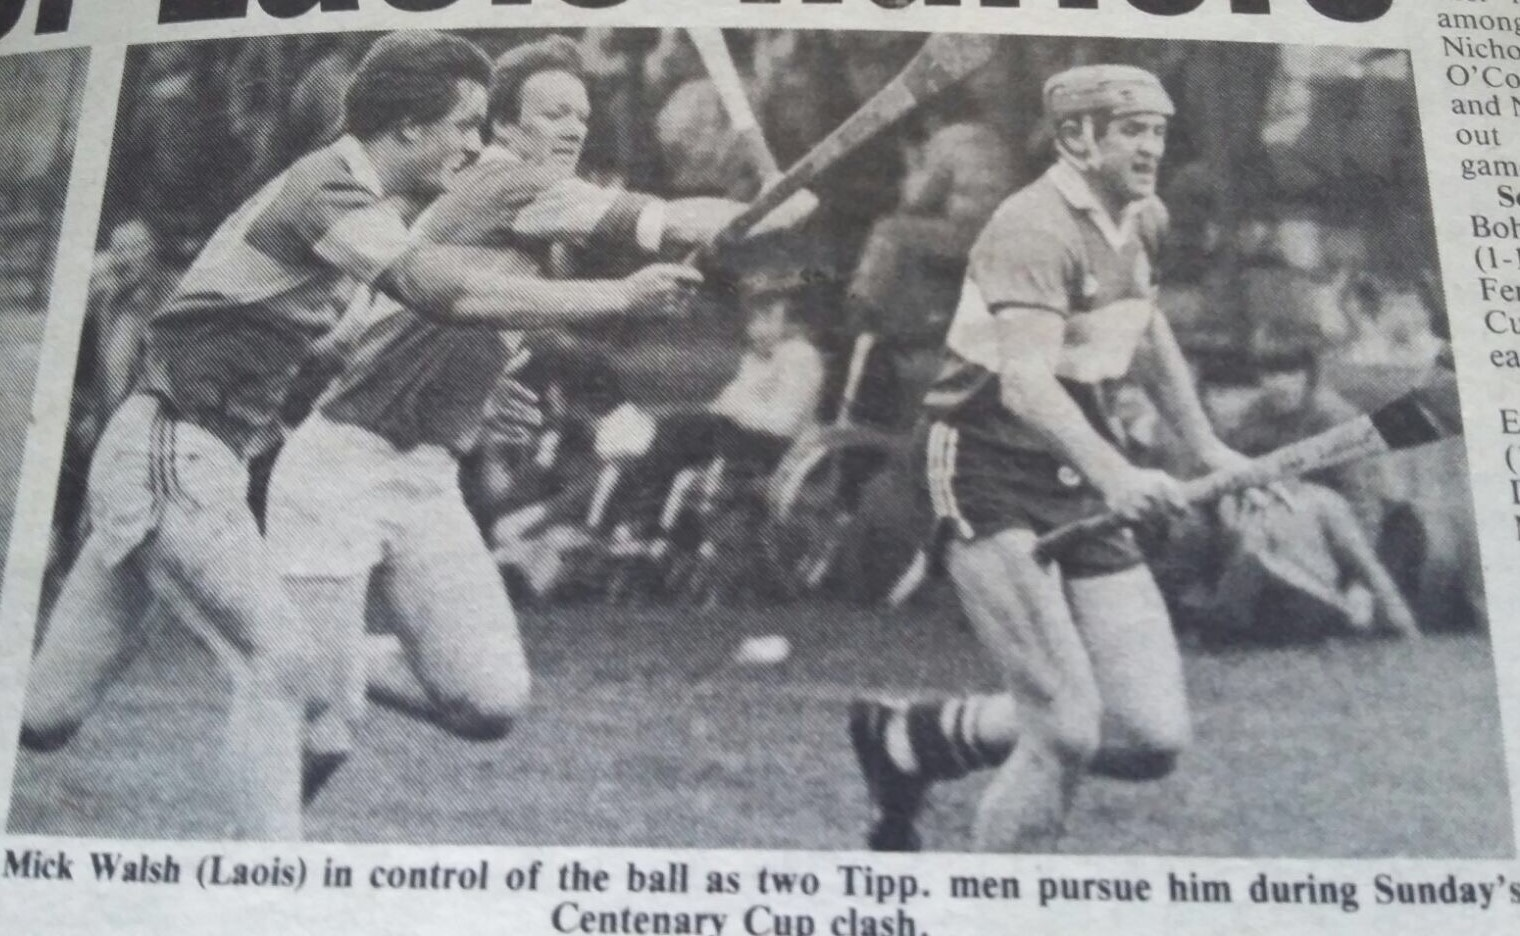 Michael Walsh gets the better of Nicky English and co